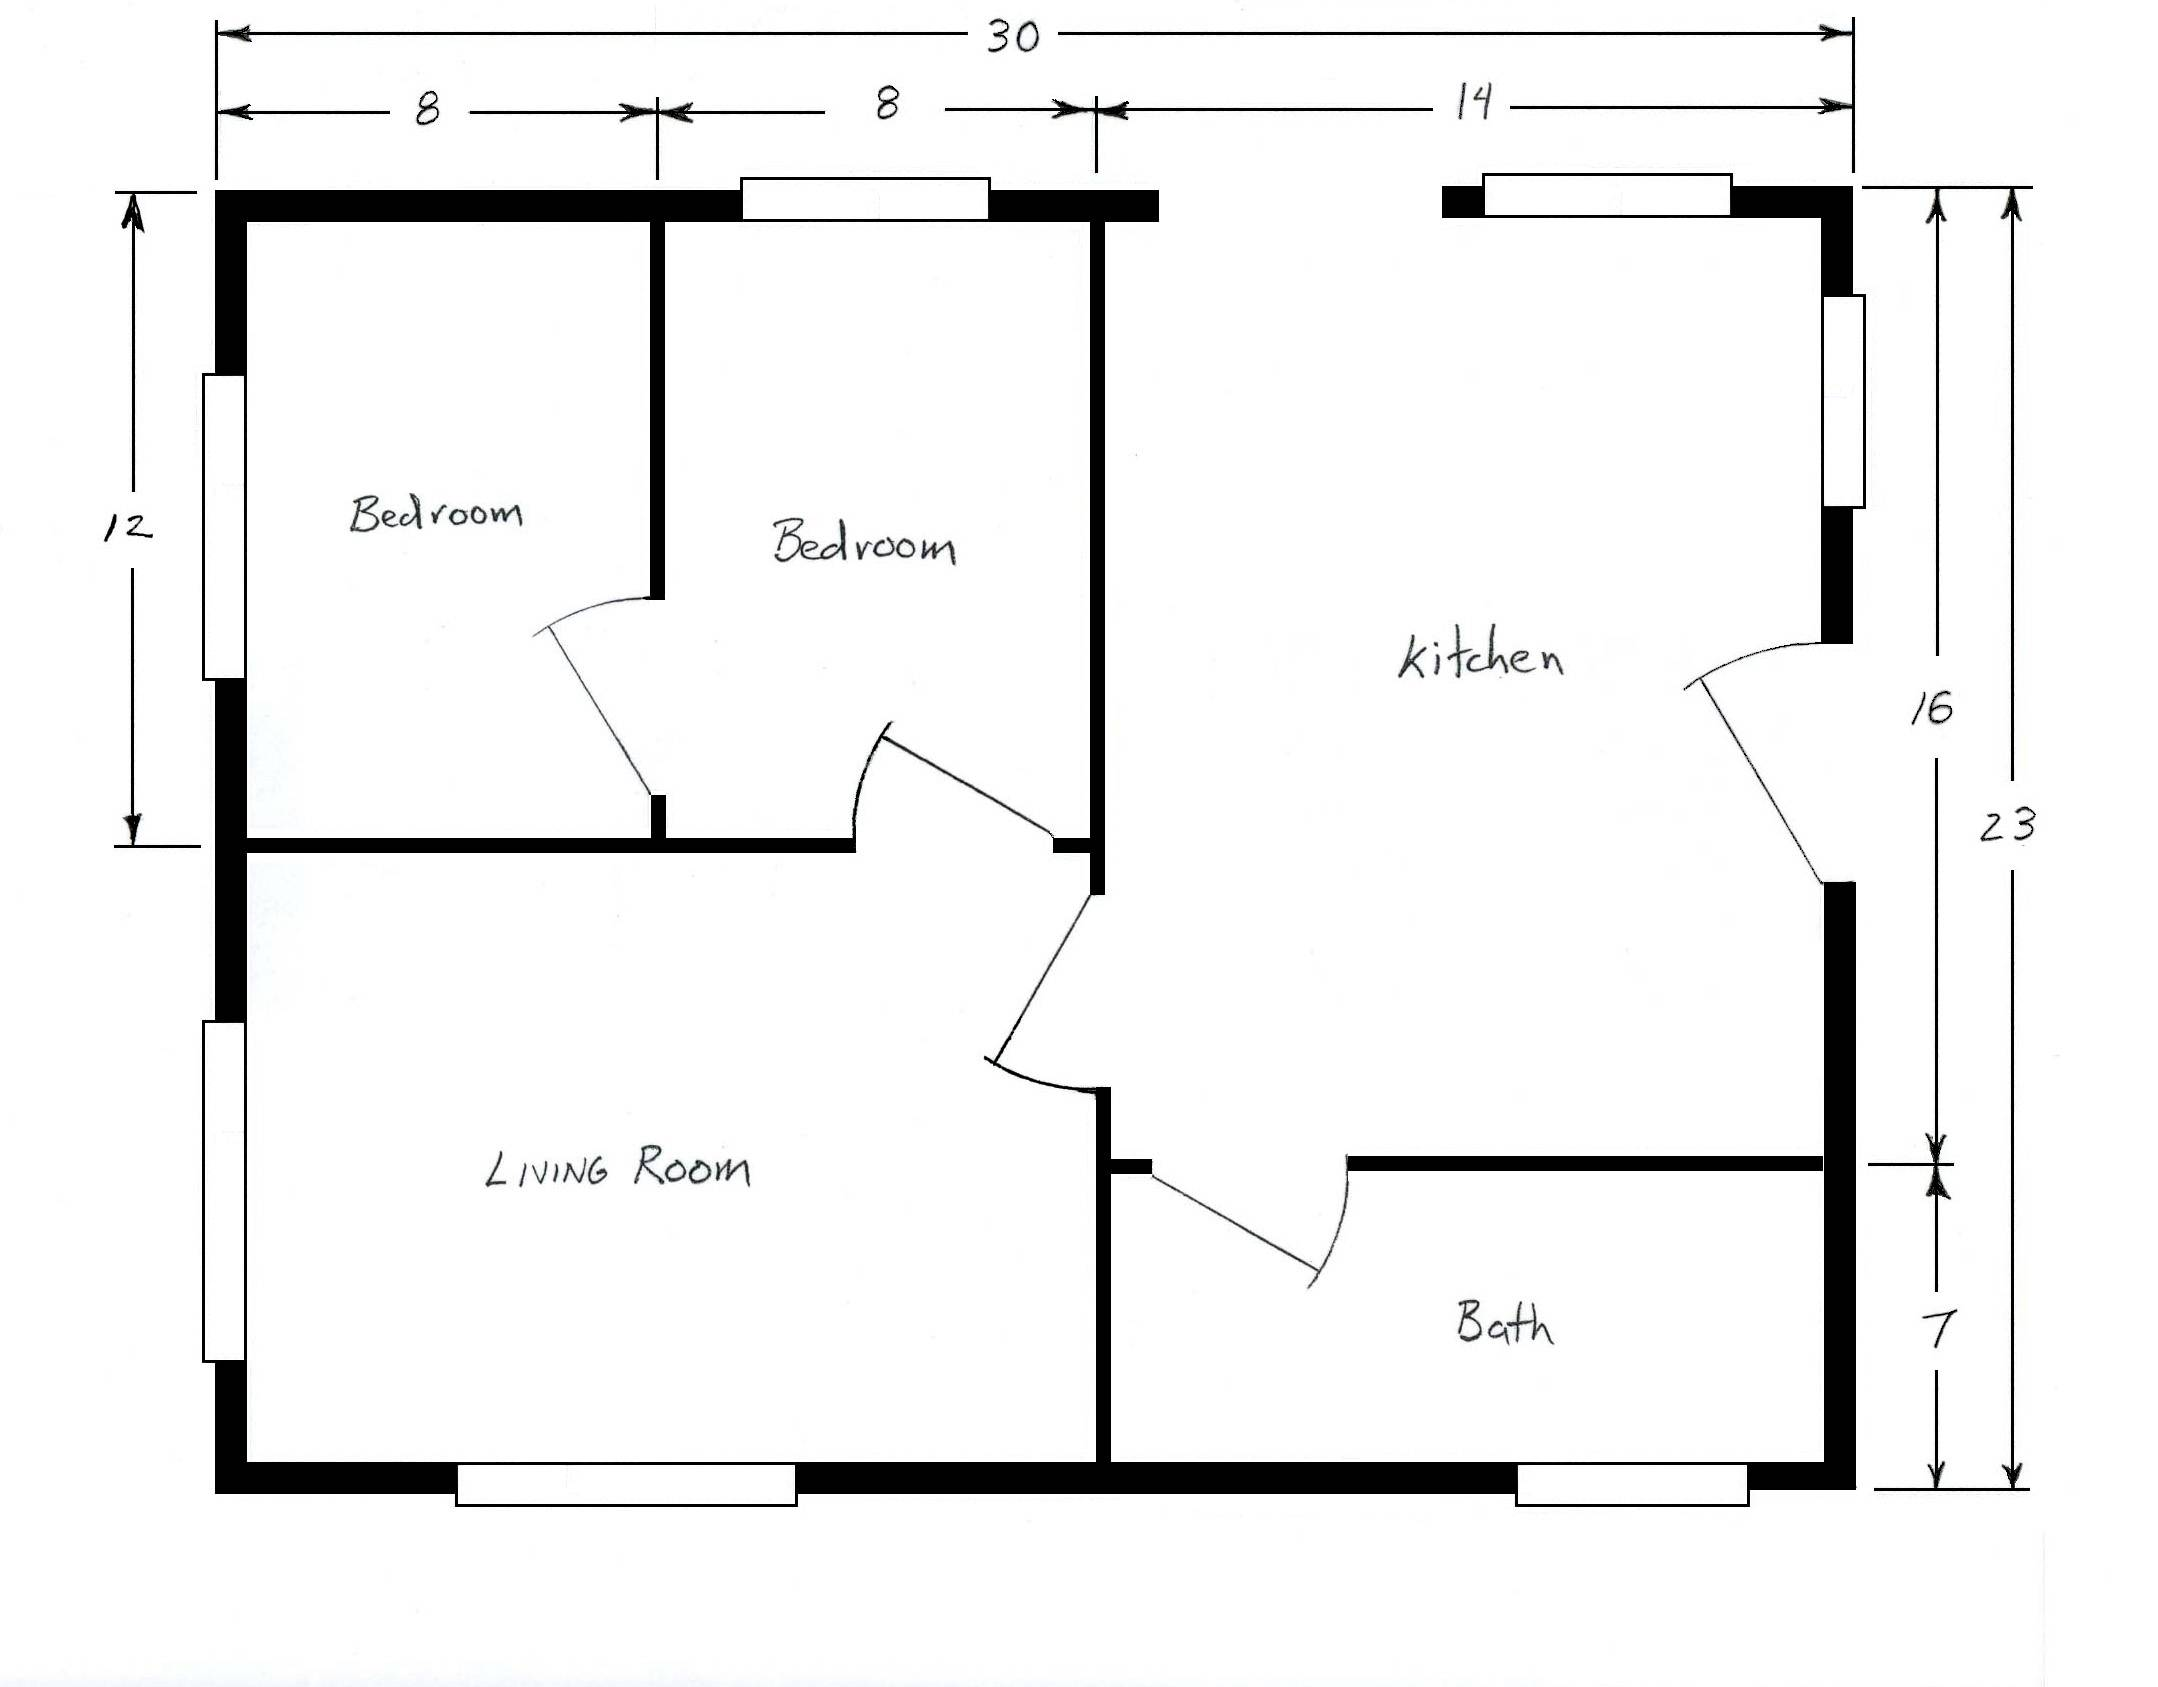 Blank House Floor Plan Template Details Floorplan Home Plans